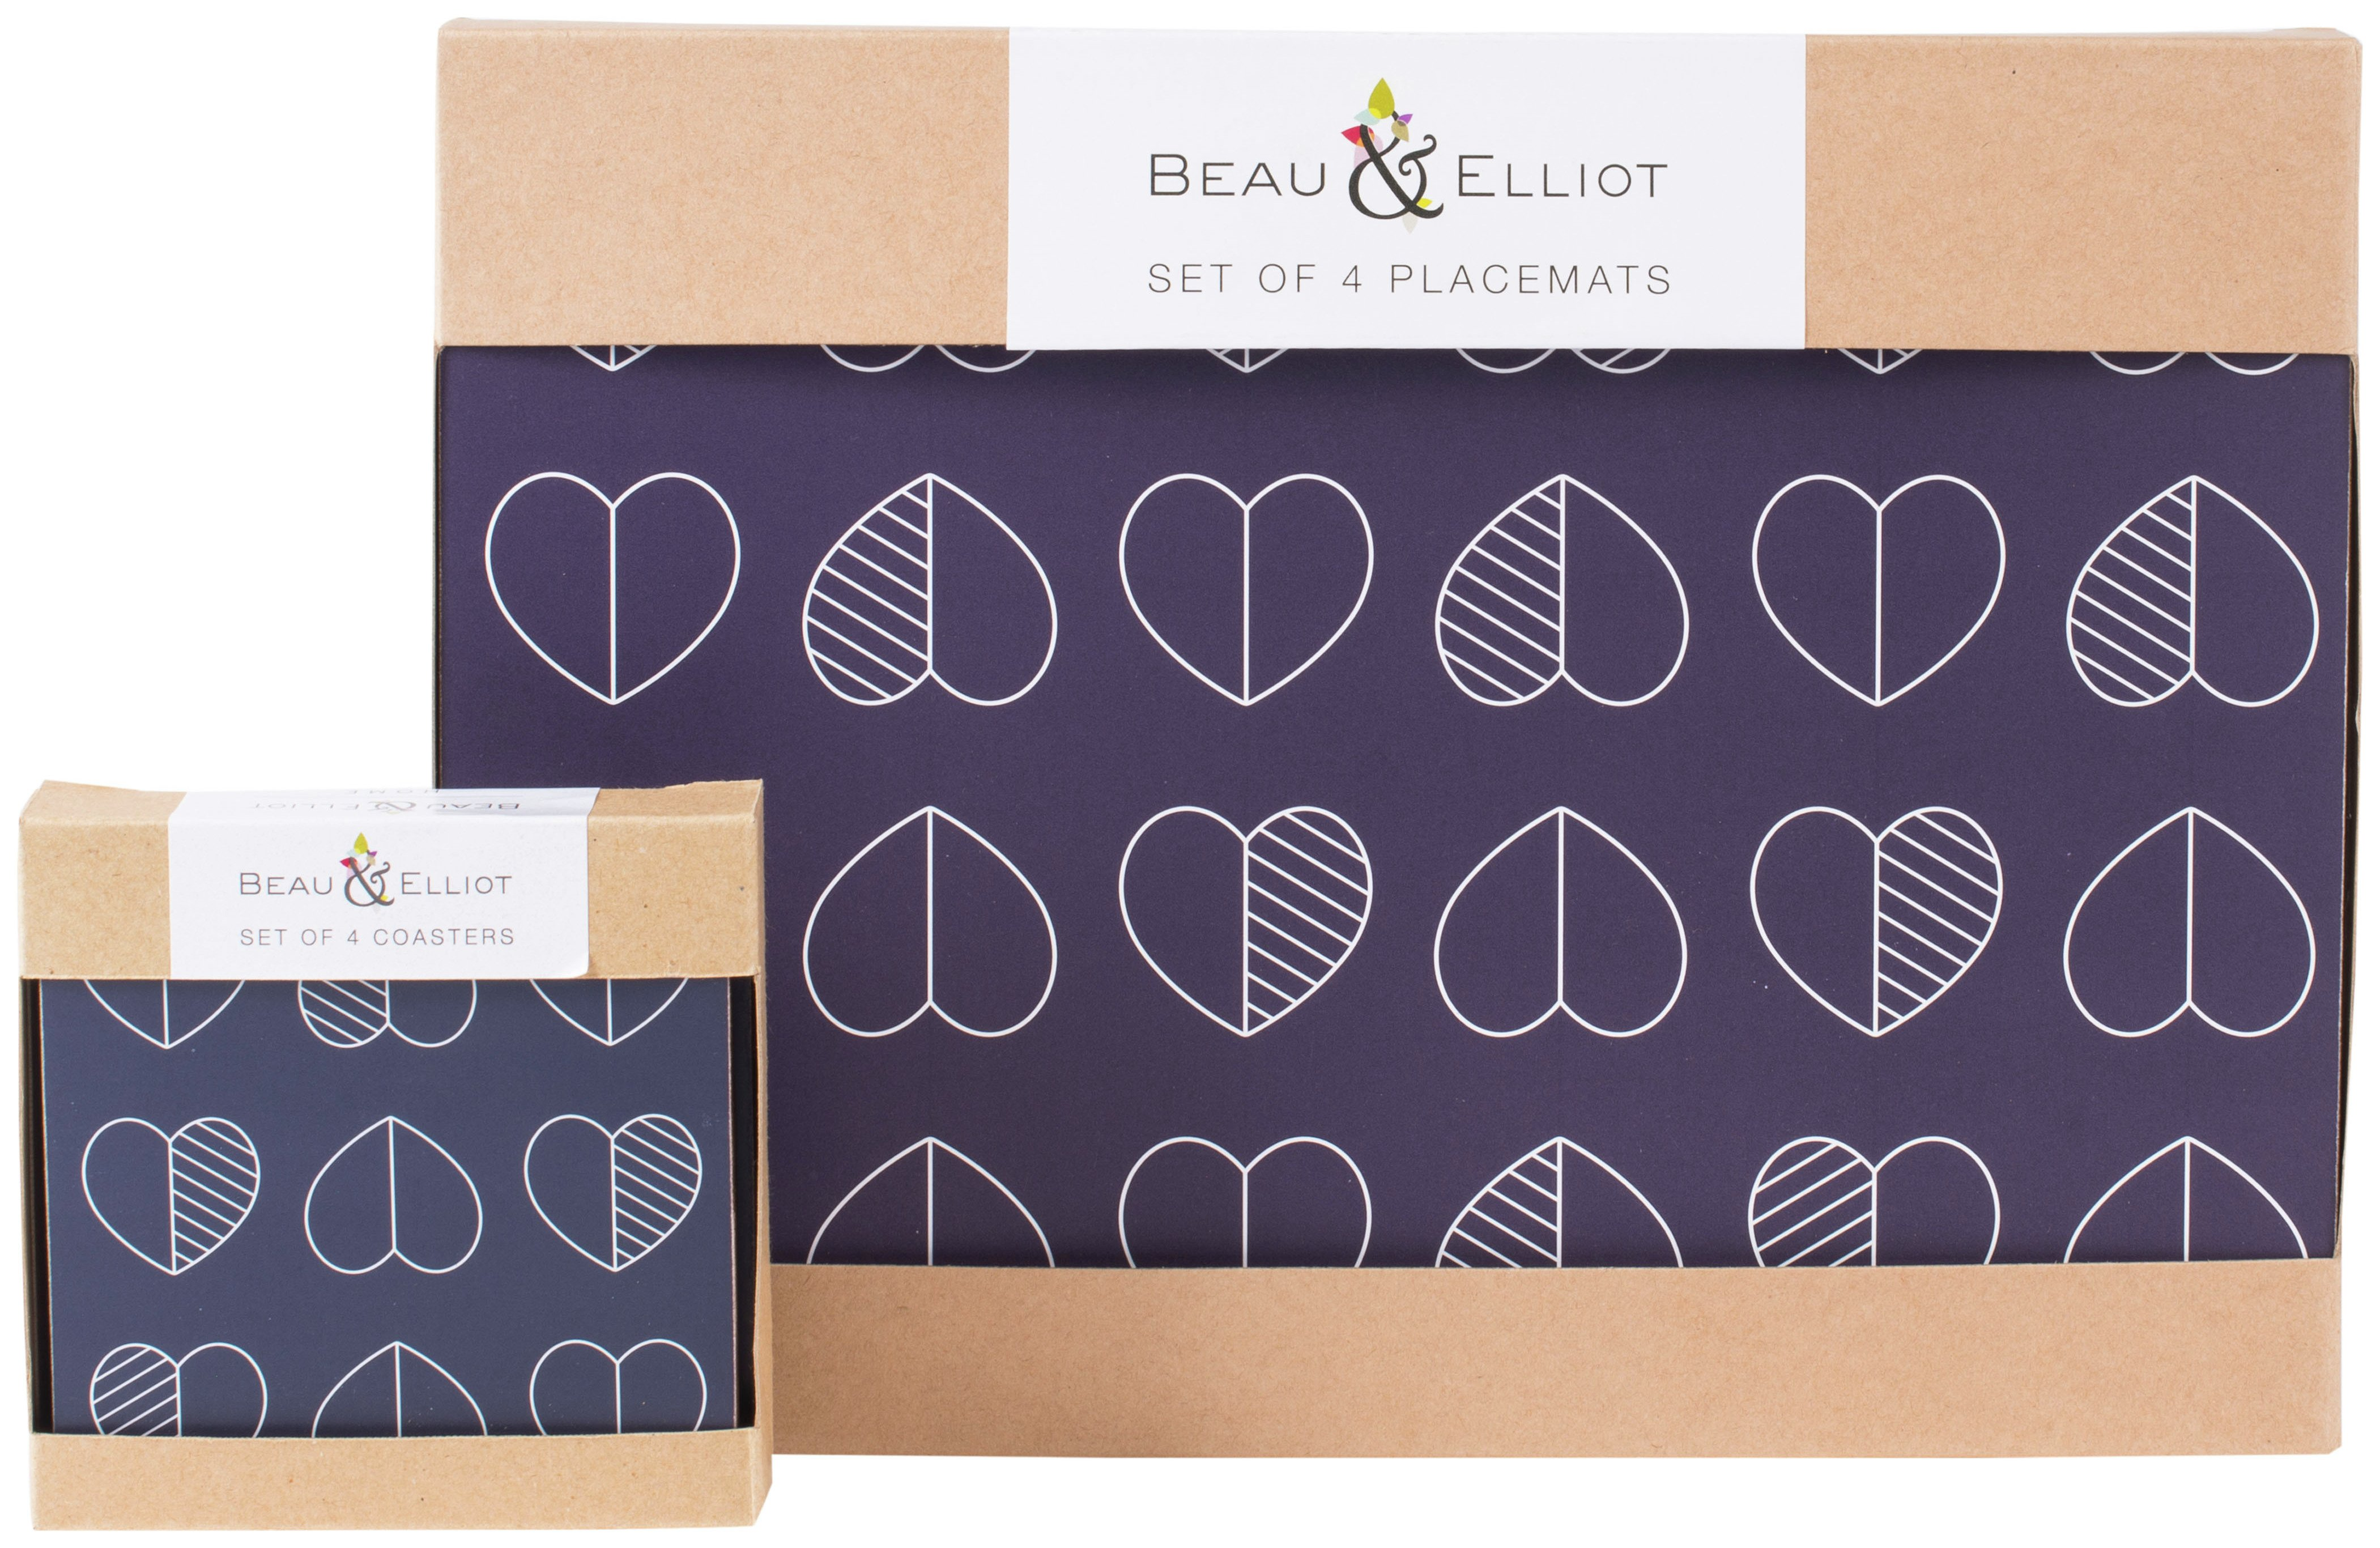 Image of Beau and Elliot Set of 4 Placemats and Coasters - Blue.